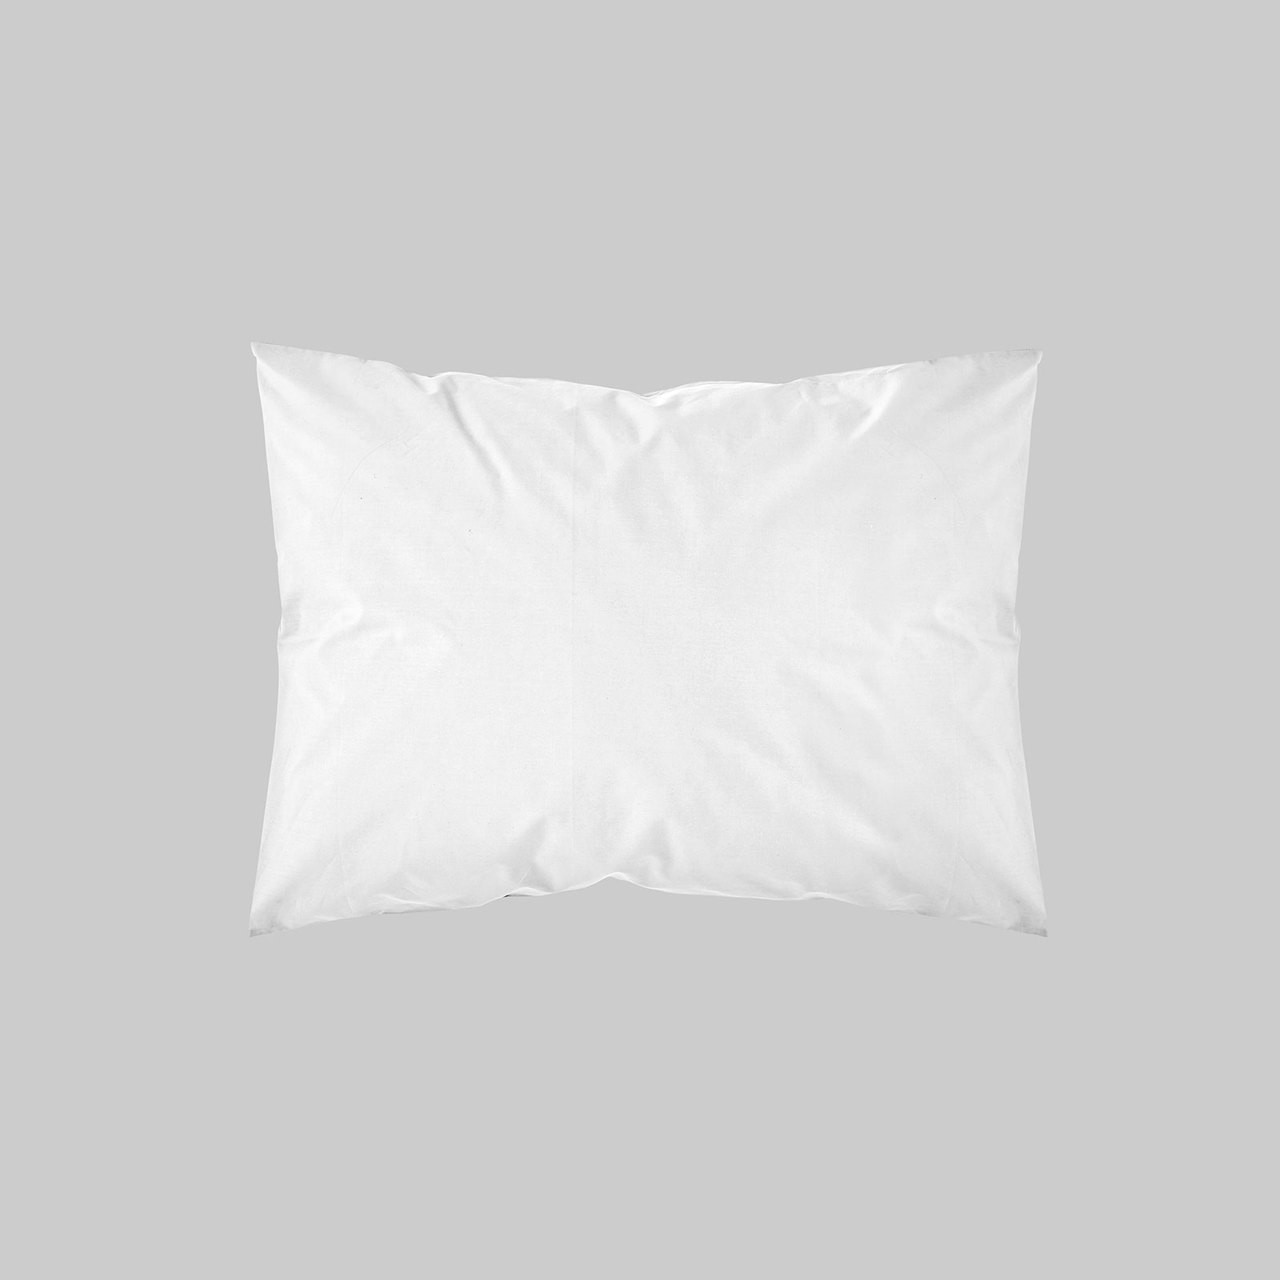 SHAM PAIR QUEEN SOLID COLOR WHITE